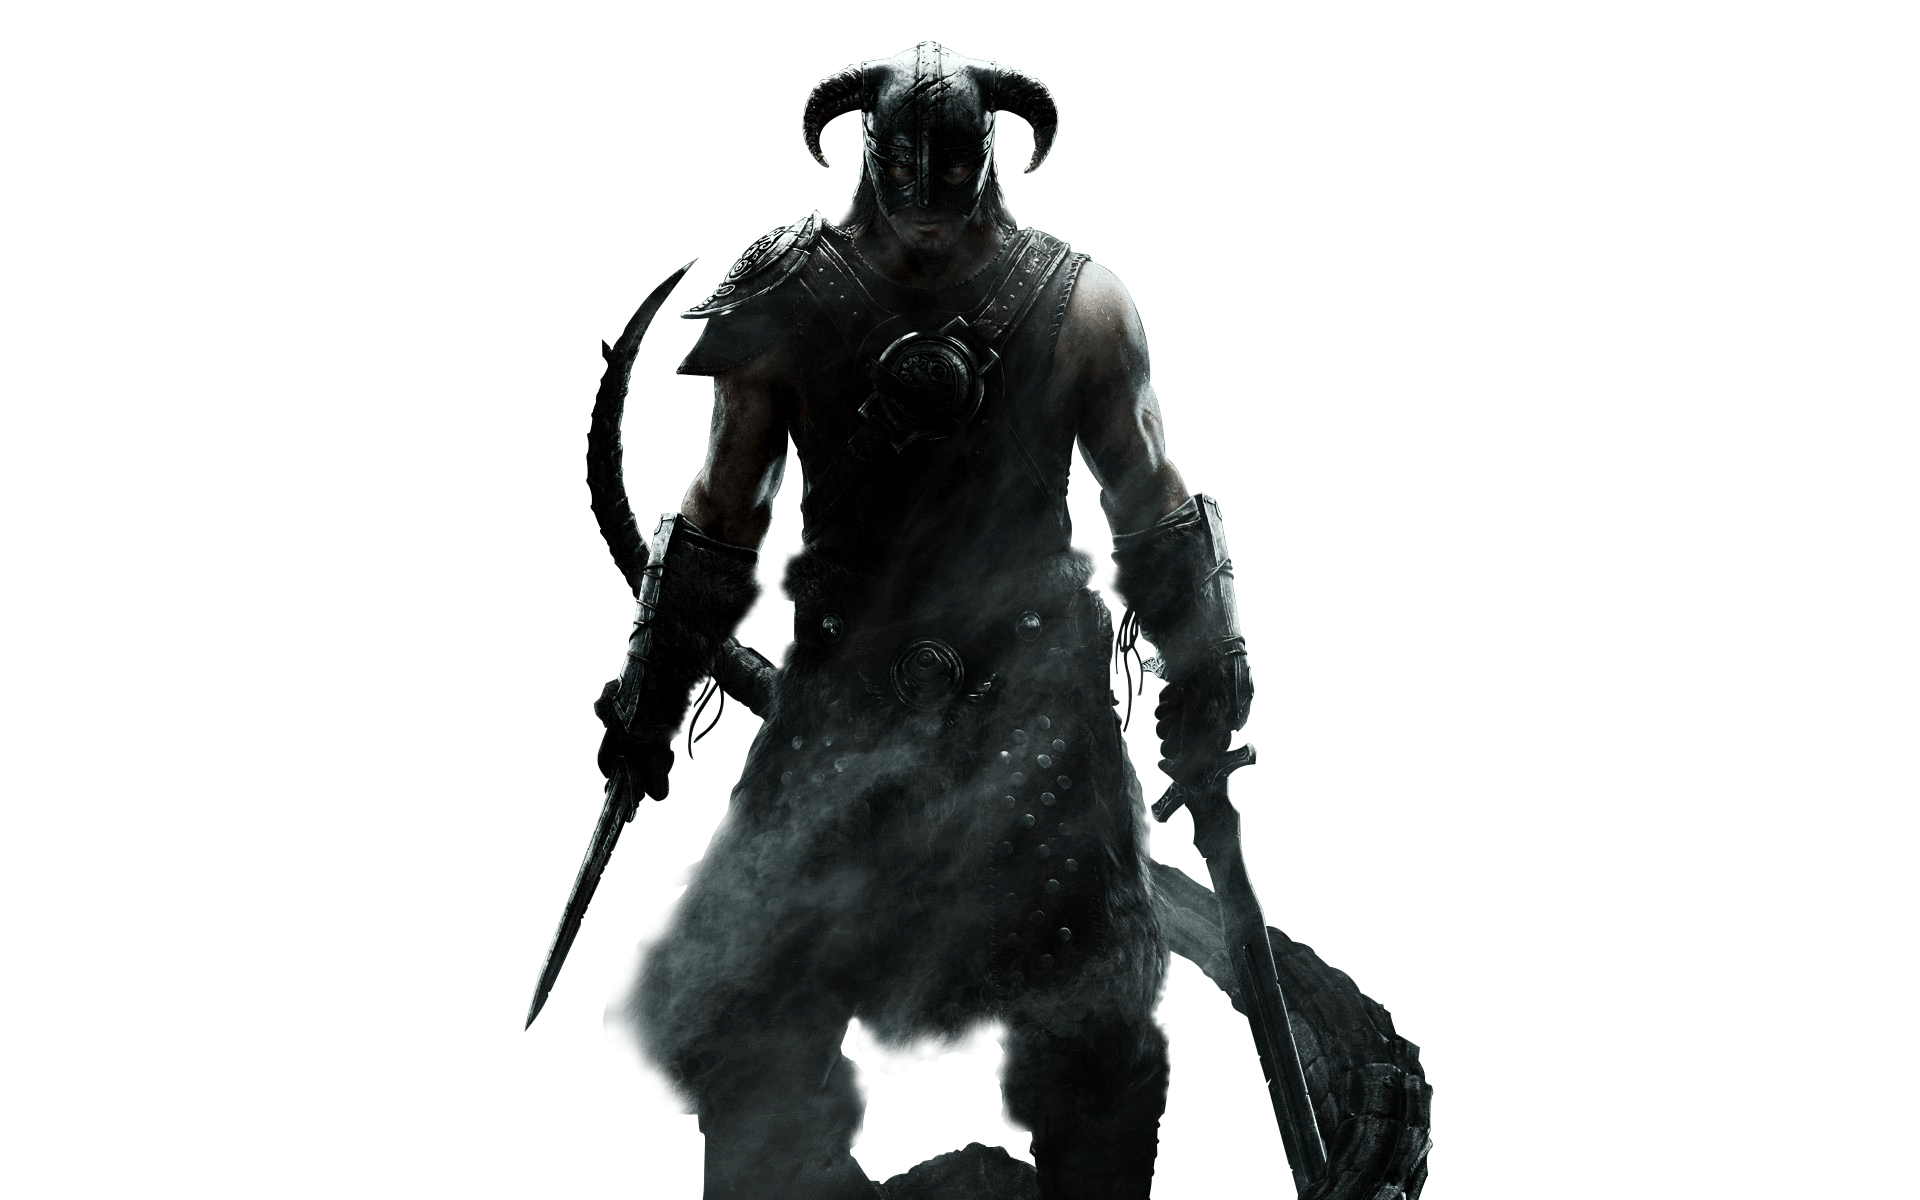 Skyrim png. Elder scrolls warrior transparent